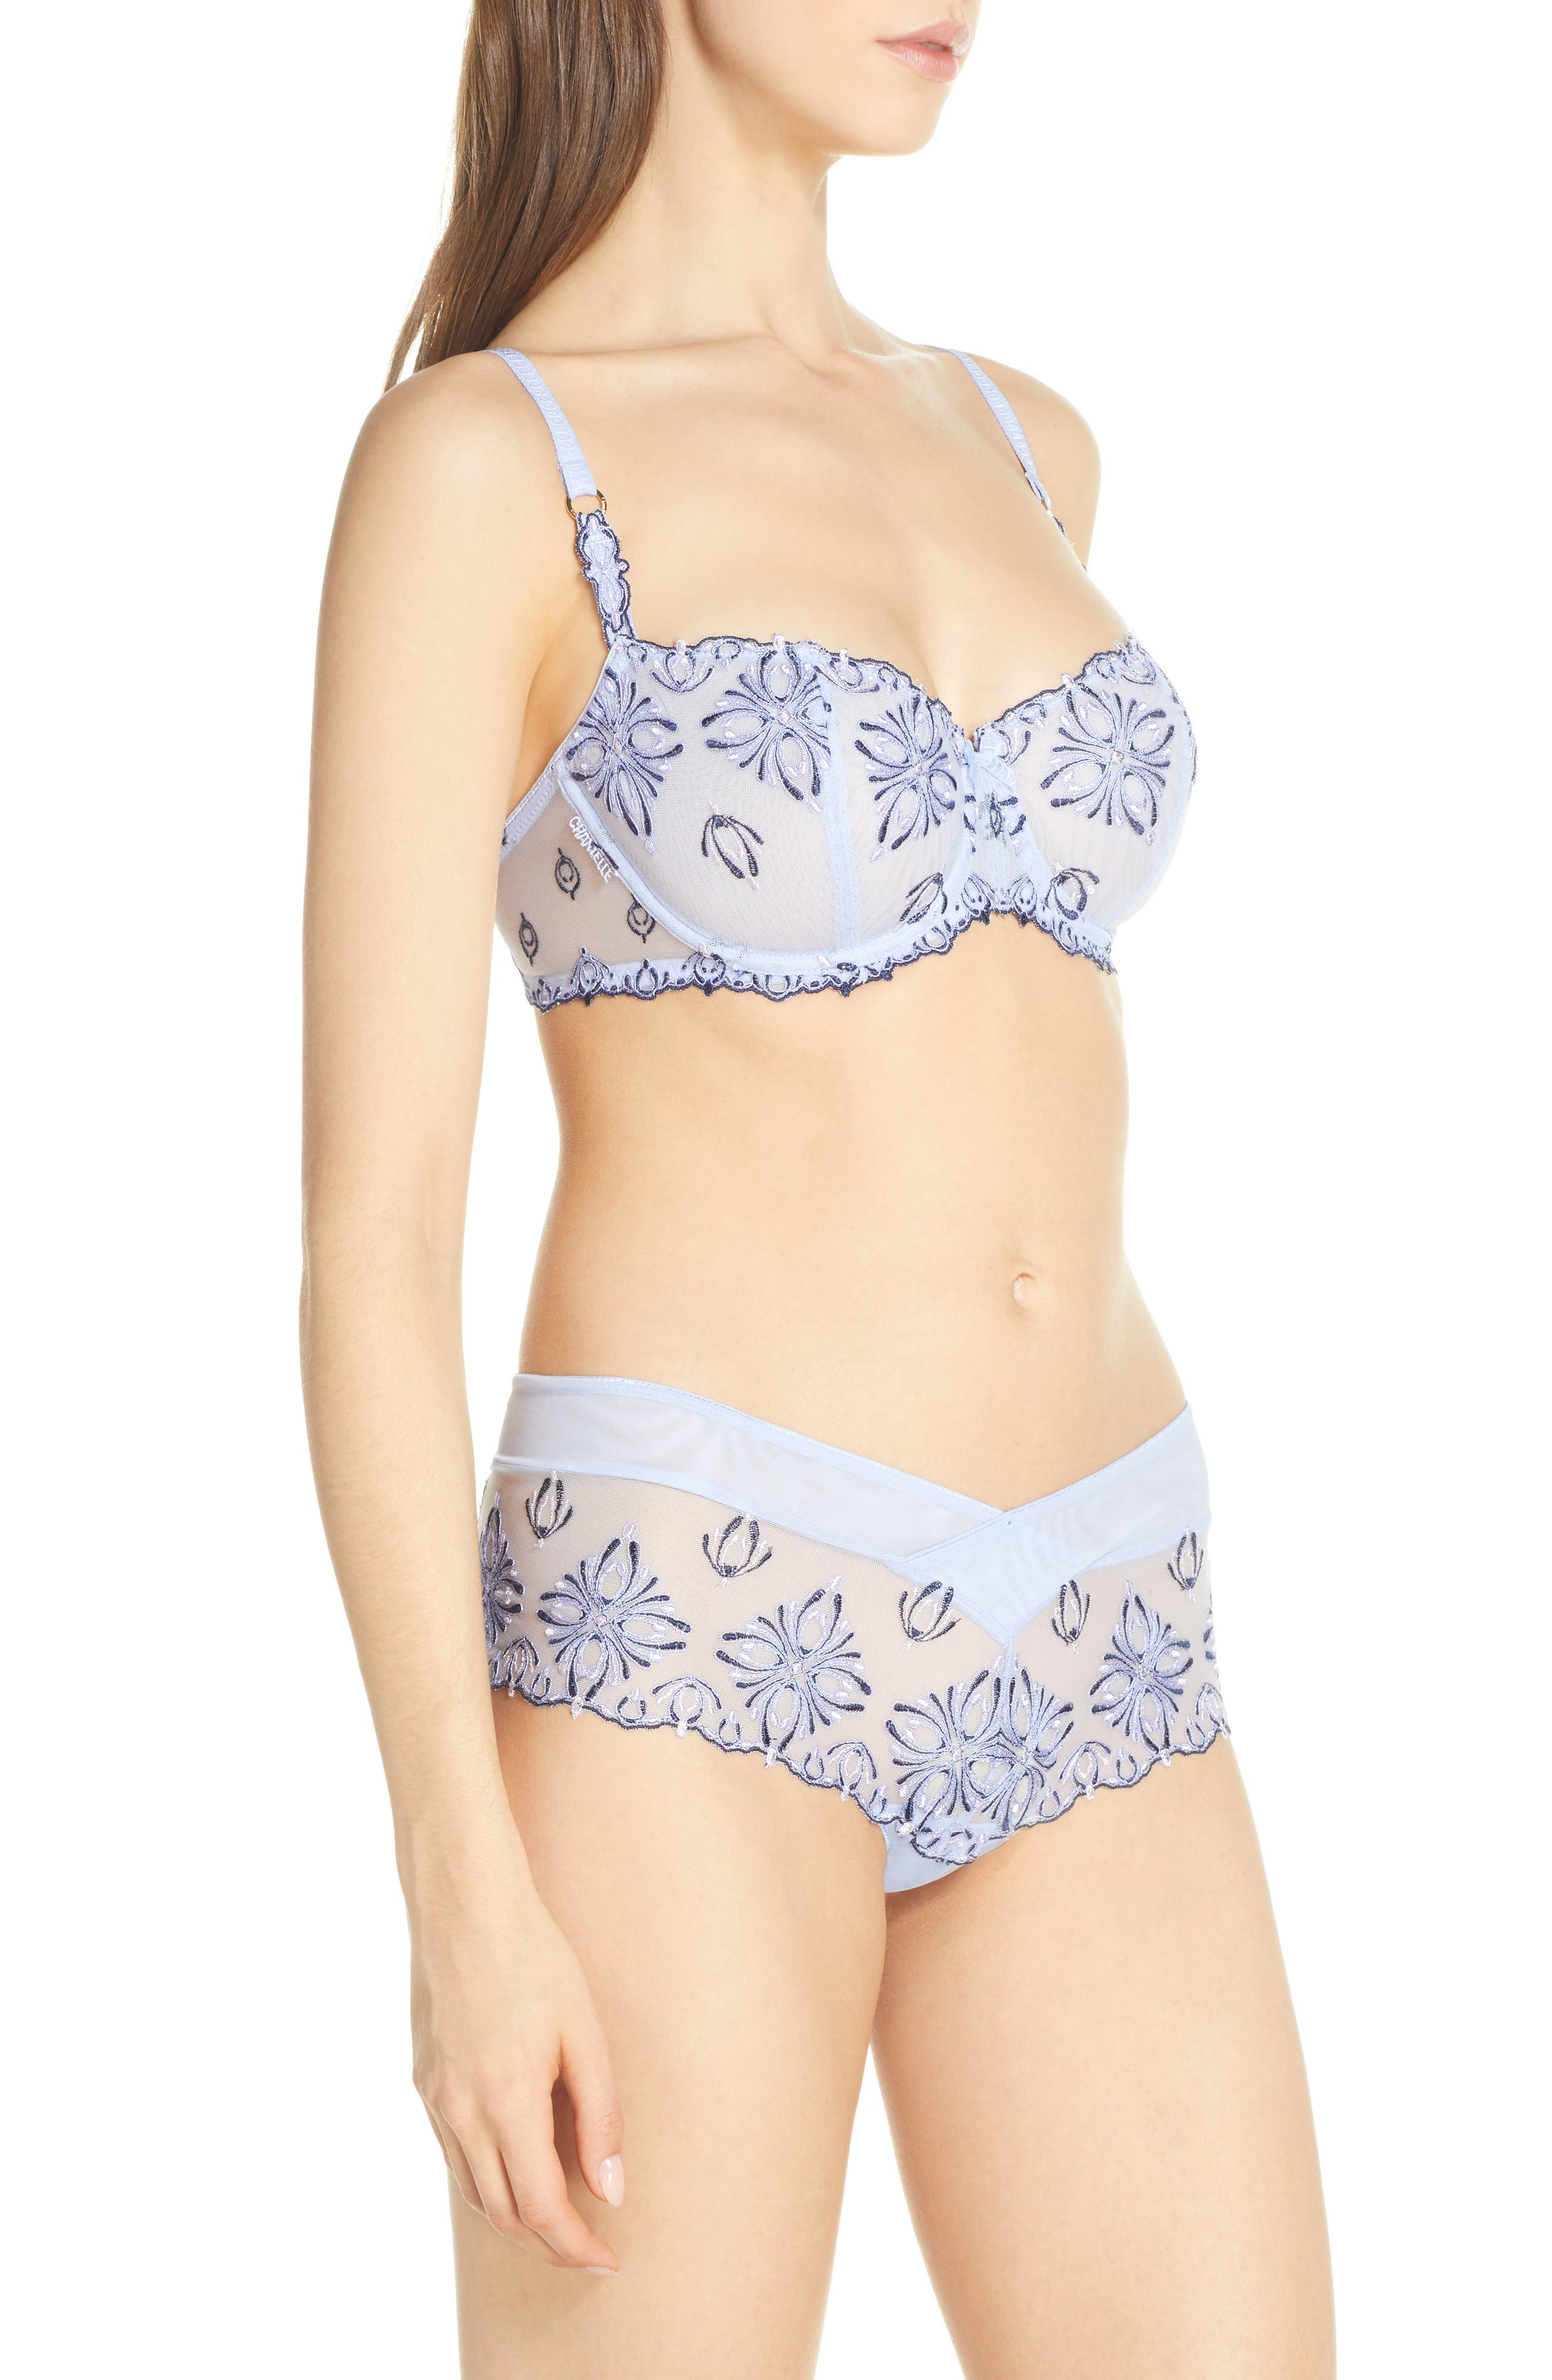 CHANTELLE LINGERIE, Champs-Élysées Underwire Demi Bra, Alternate thumbnail 9, color, SERENITY BLUE